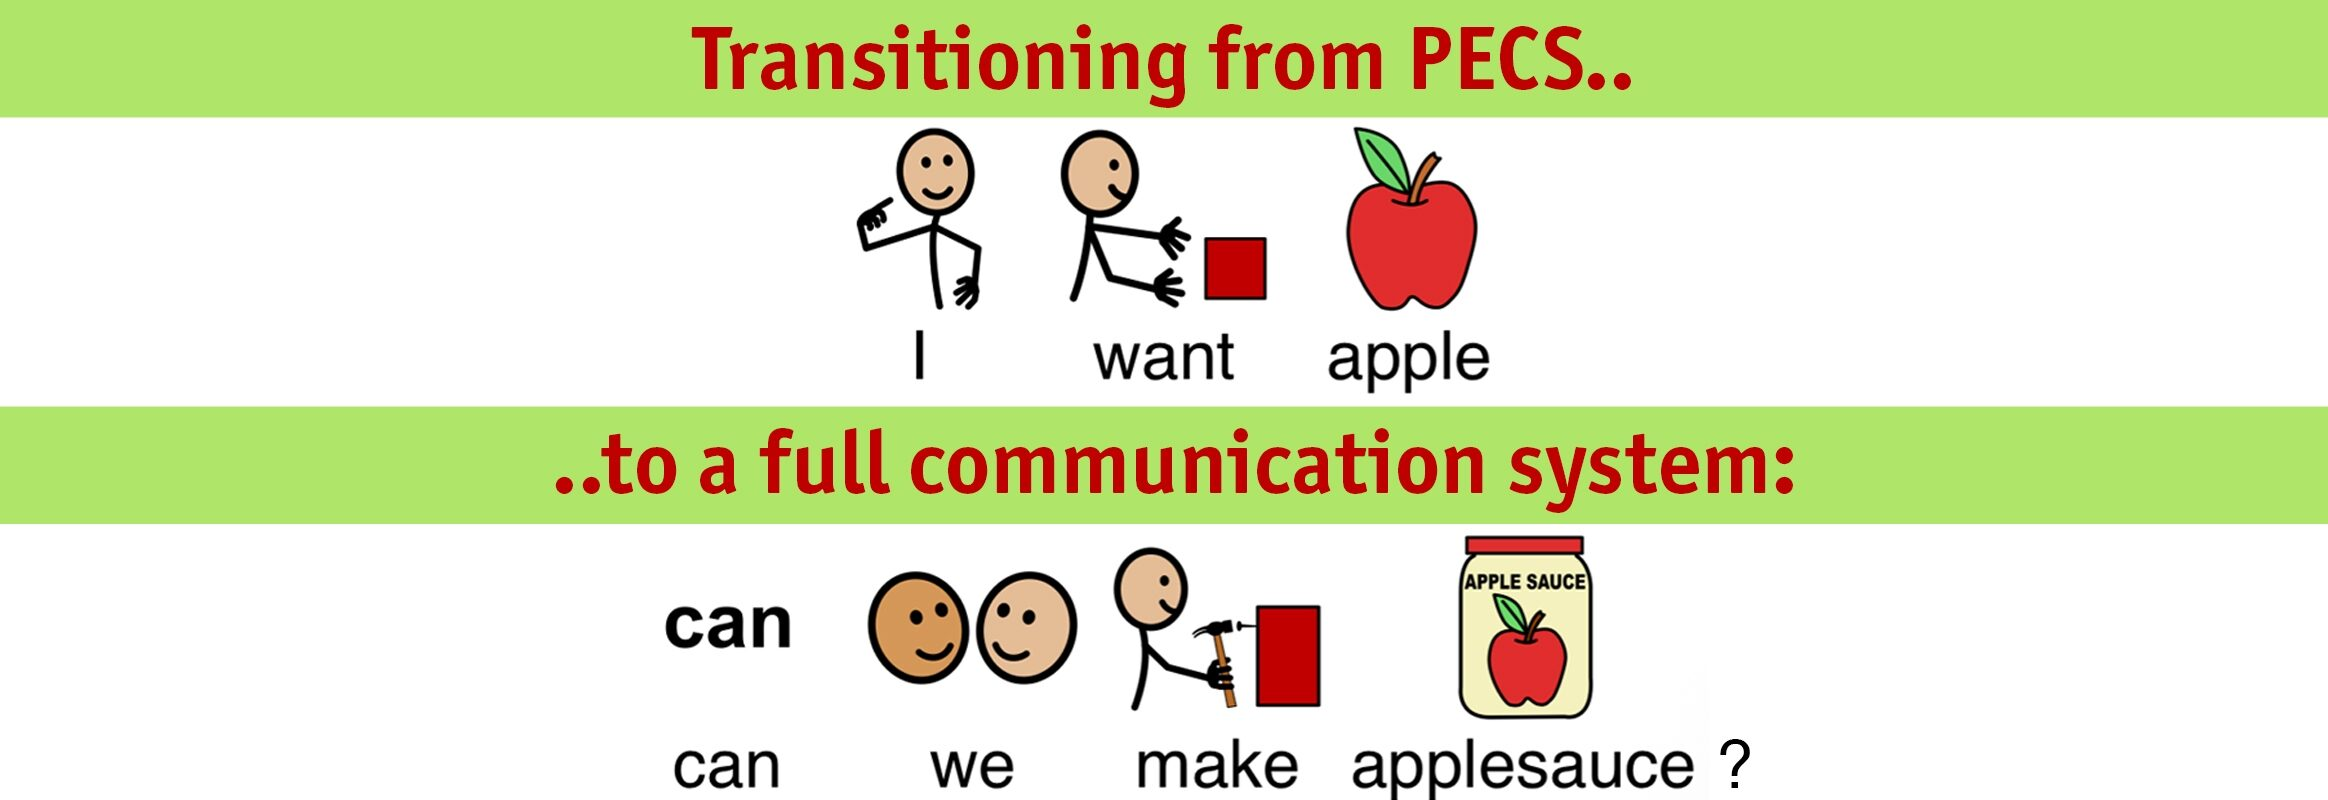 """Illustrations of """"Transitioning from PECS"""" with simple sentence to """"to a full communication system"""" with a more grammatically complex sentence."""